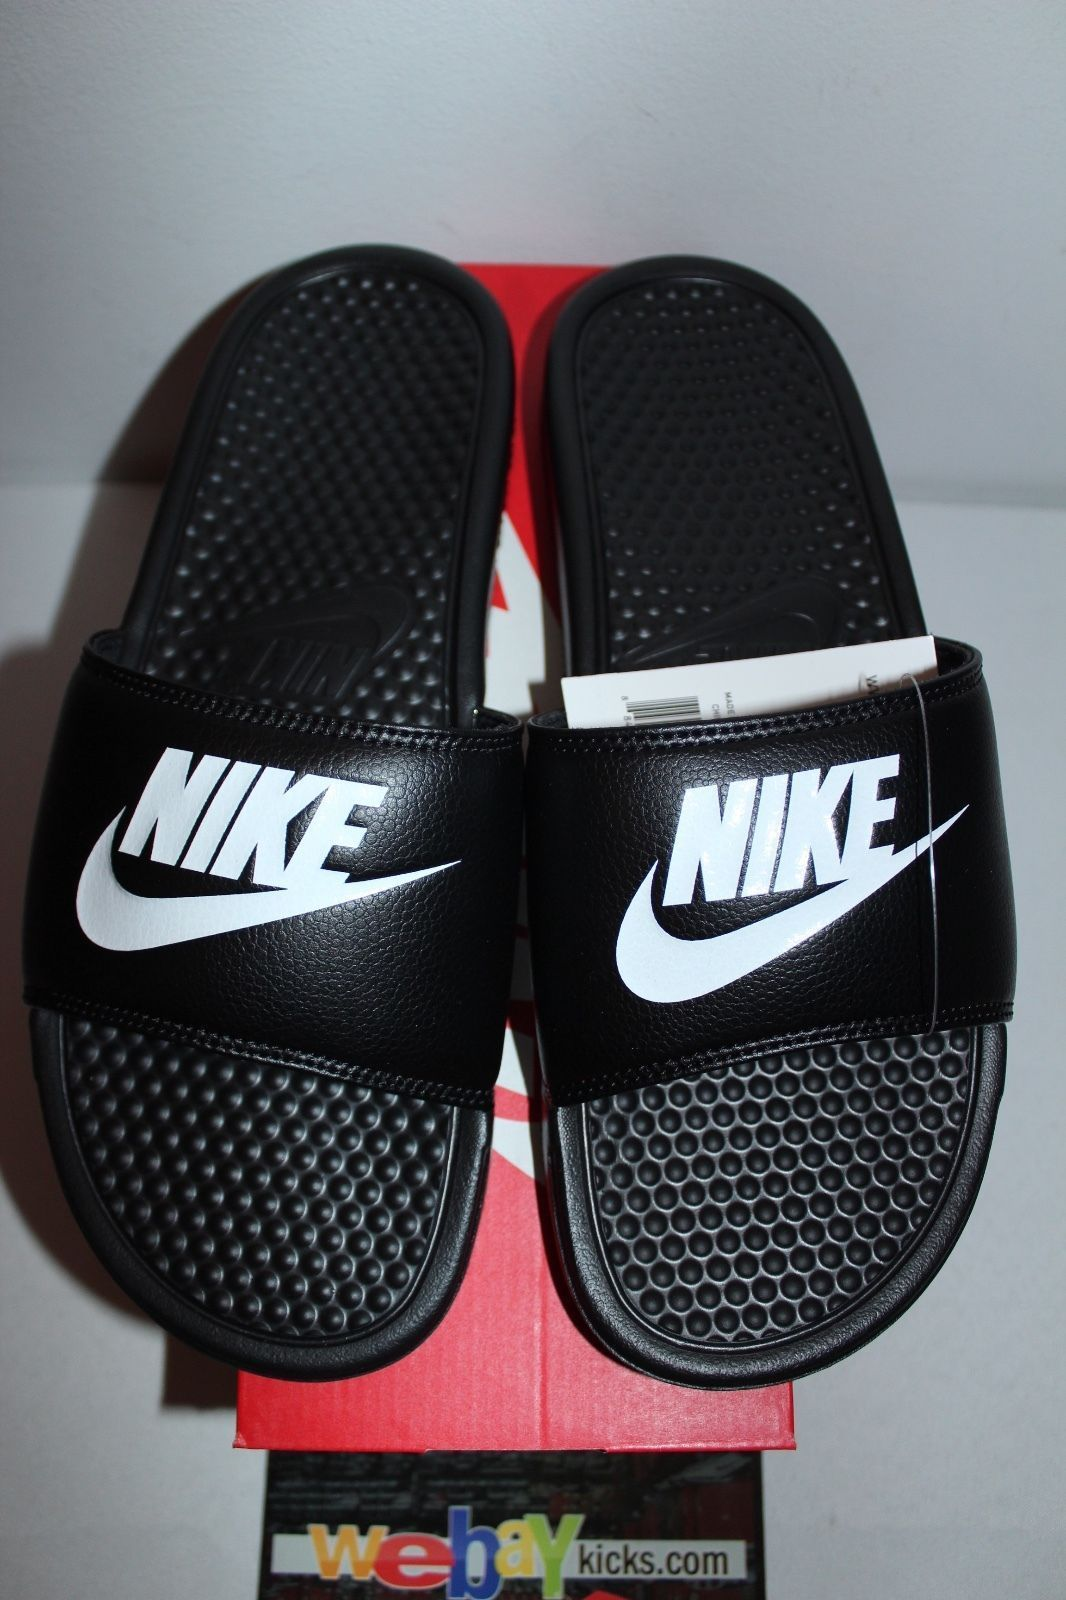 ddfe4dfffdd9 ... Nike Air Benassi JDI Black White Slide Slippers 343880-090 Men s Size 7-11  ...